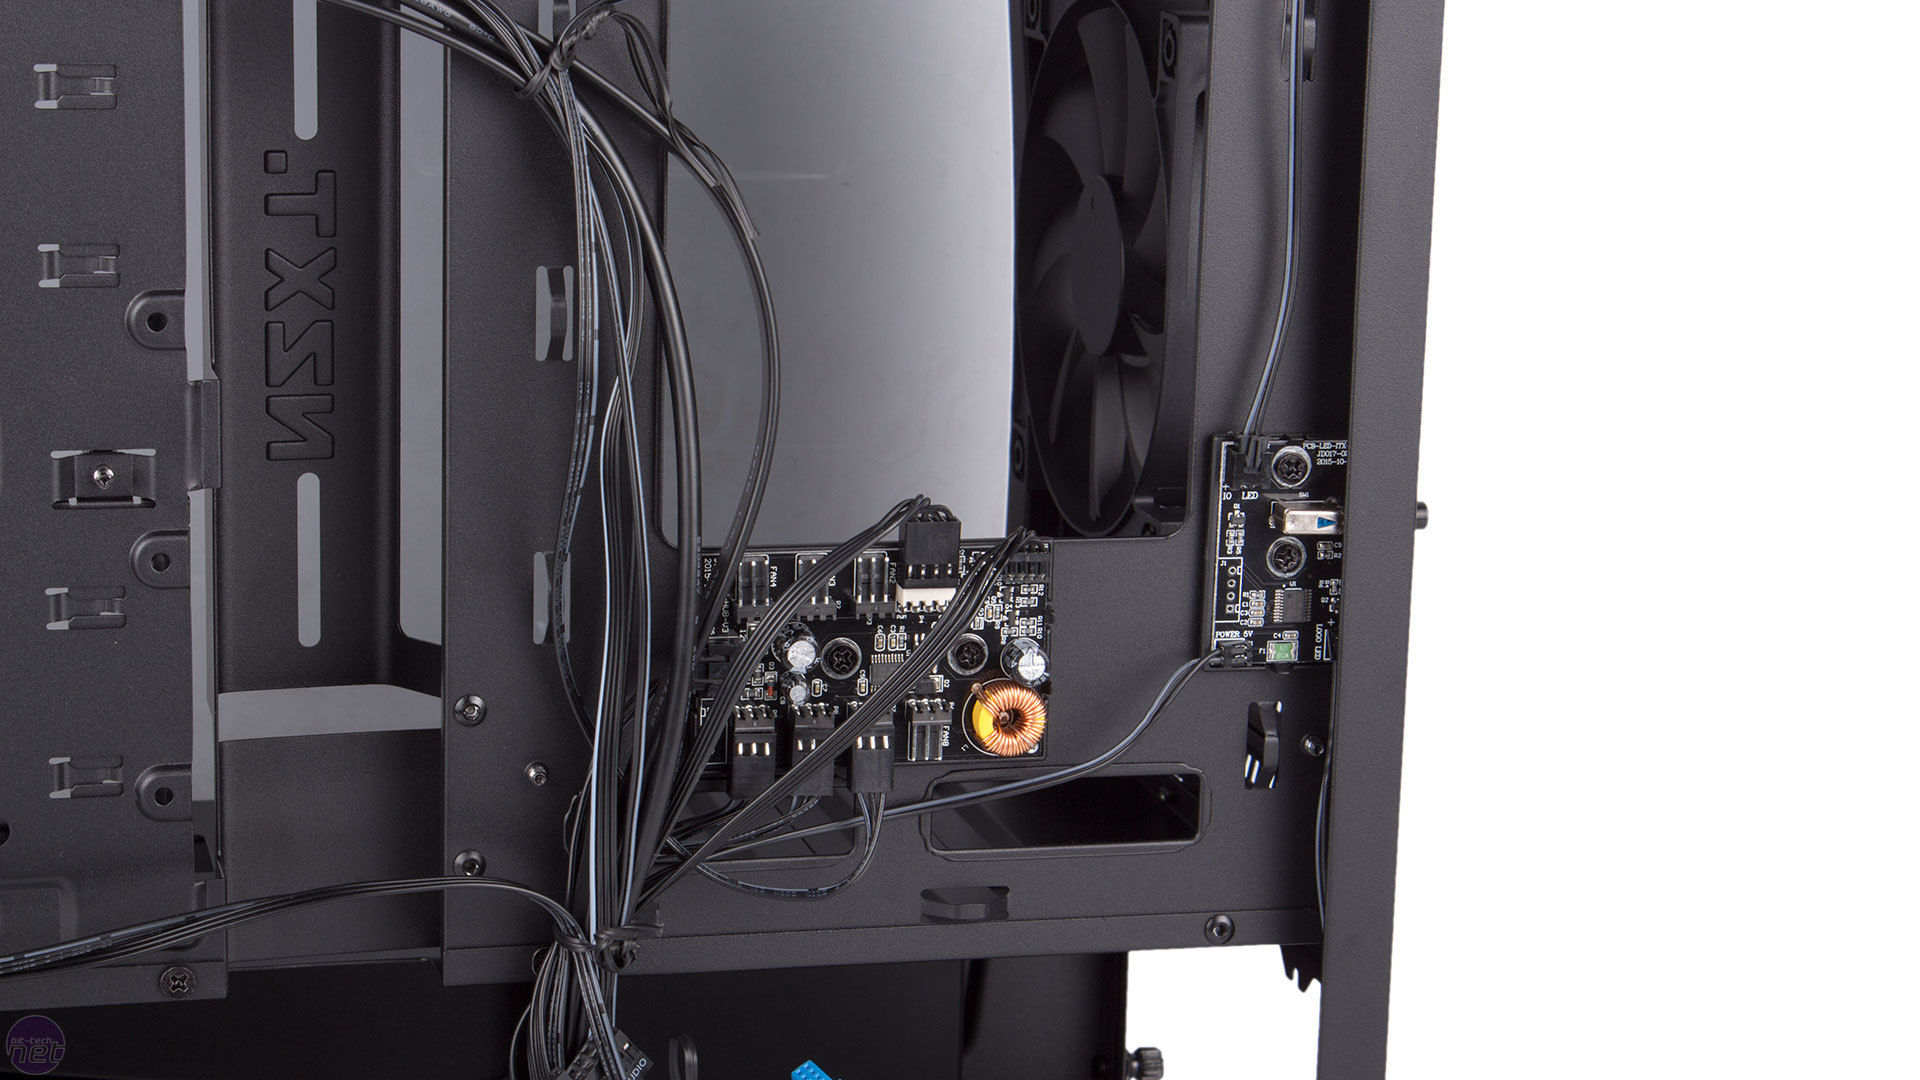 nzxt fan hookup - fan connectors will fit both 3 pin and 4 pin fans - it has 30w per channel, and two molex power connectors for a solid power input this means you can hook up up to 2-3 fans per channel with some wire splitting magic if you would like.